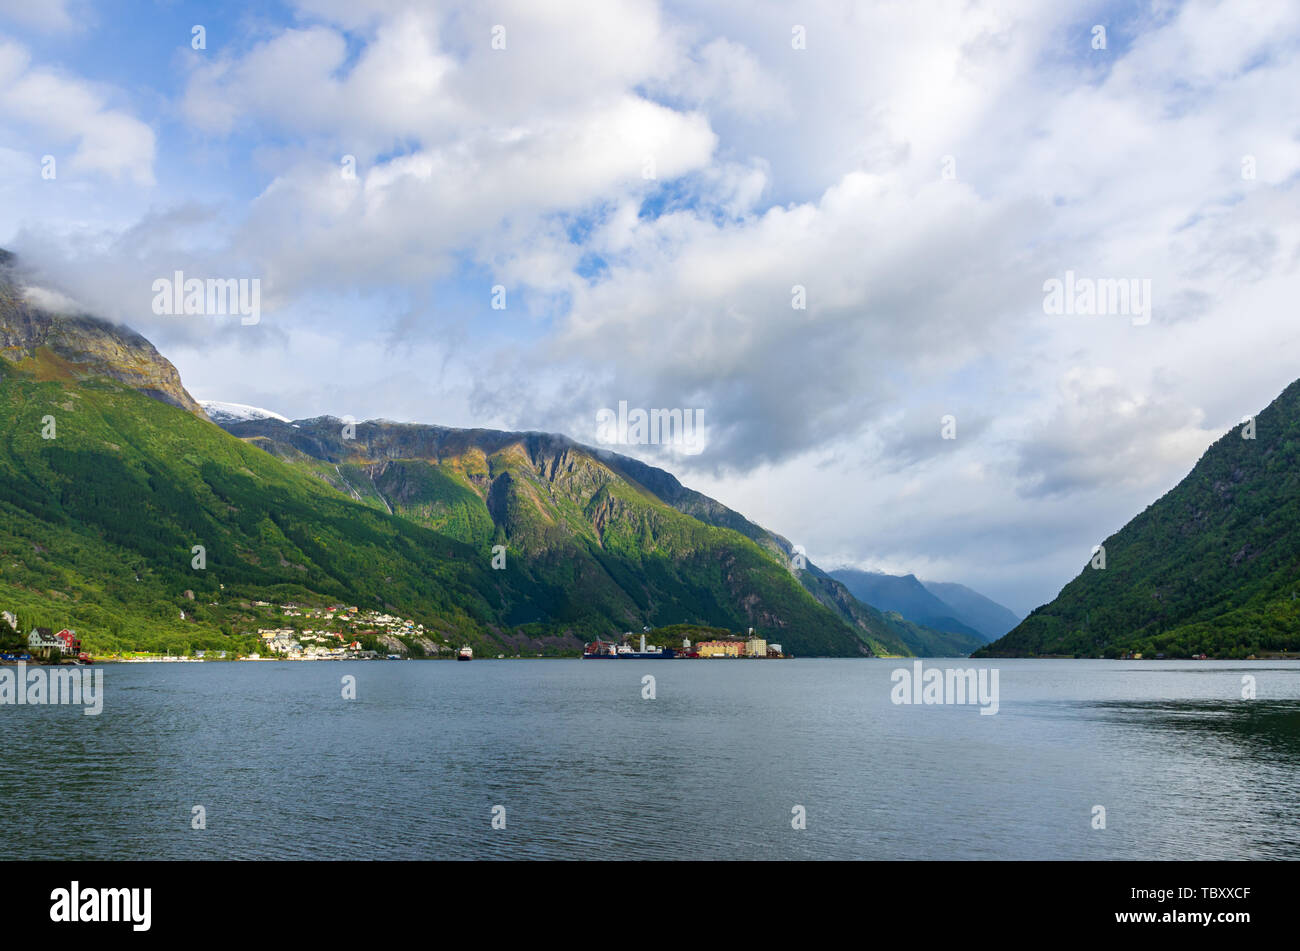 Landscape of the Hardanger fjord seen from the village of Odda, with a factory in background - Stock Image